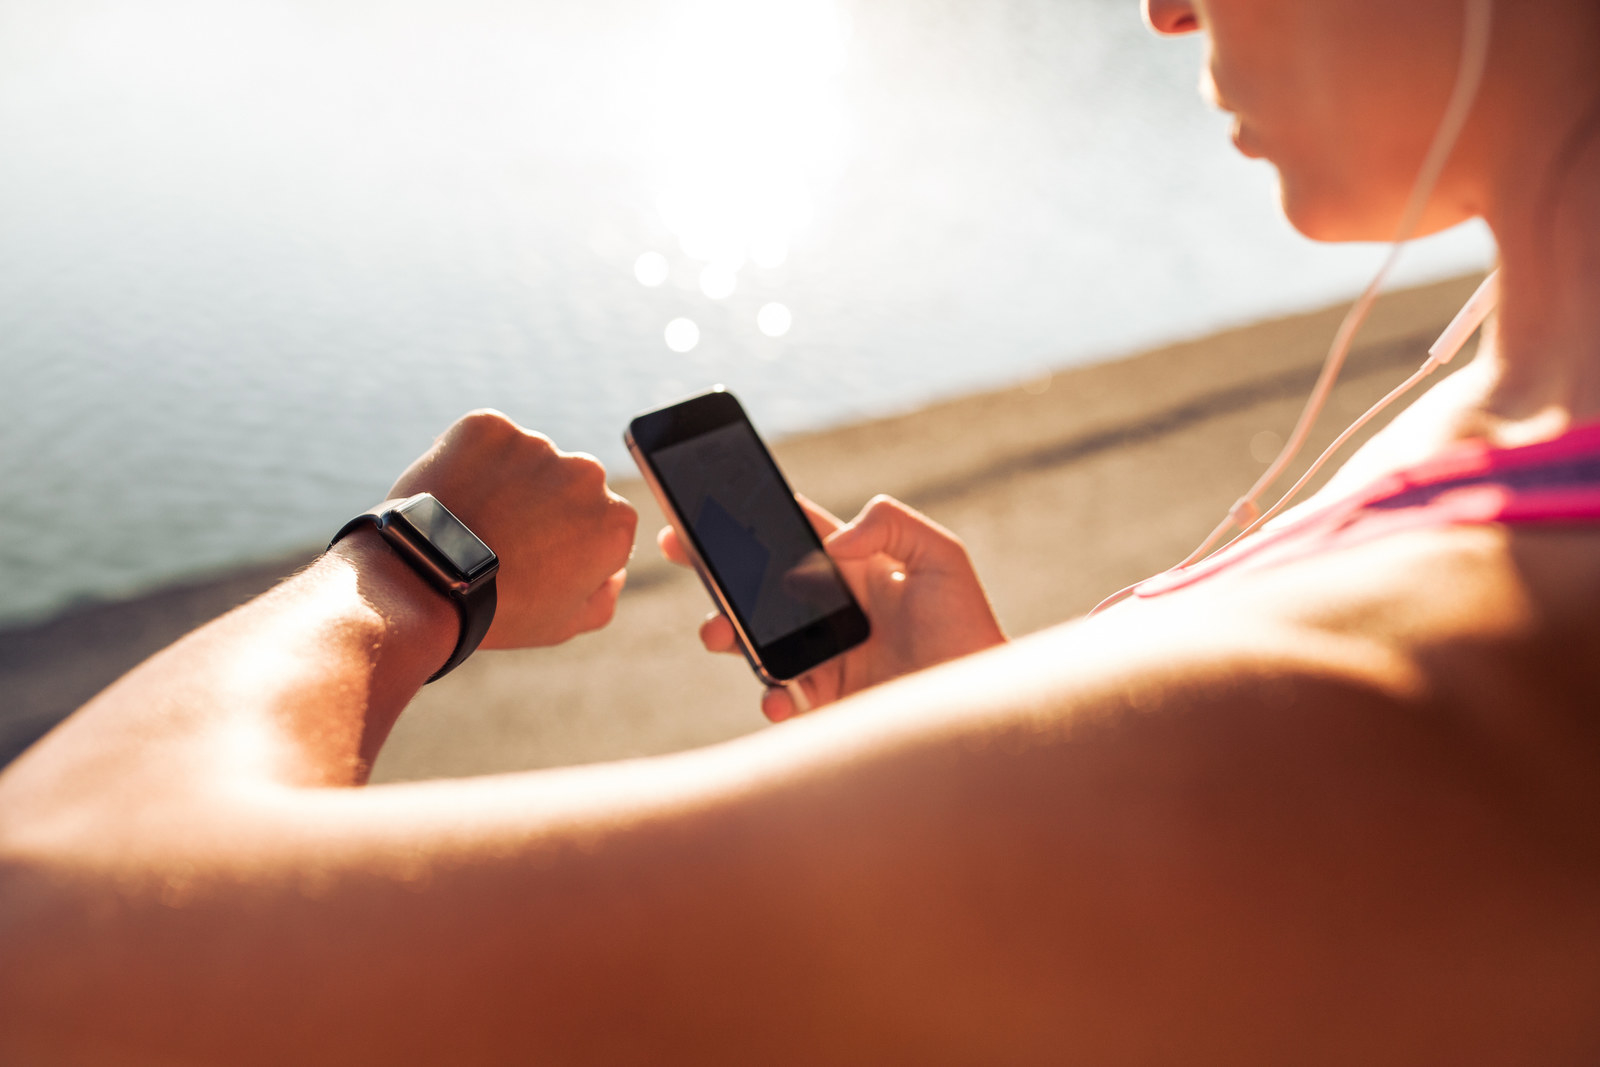 iPhone Apps Could Be A Revolution In Health — If People Use Them